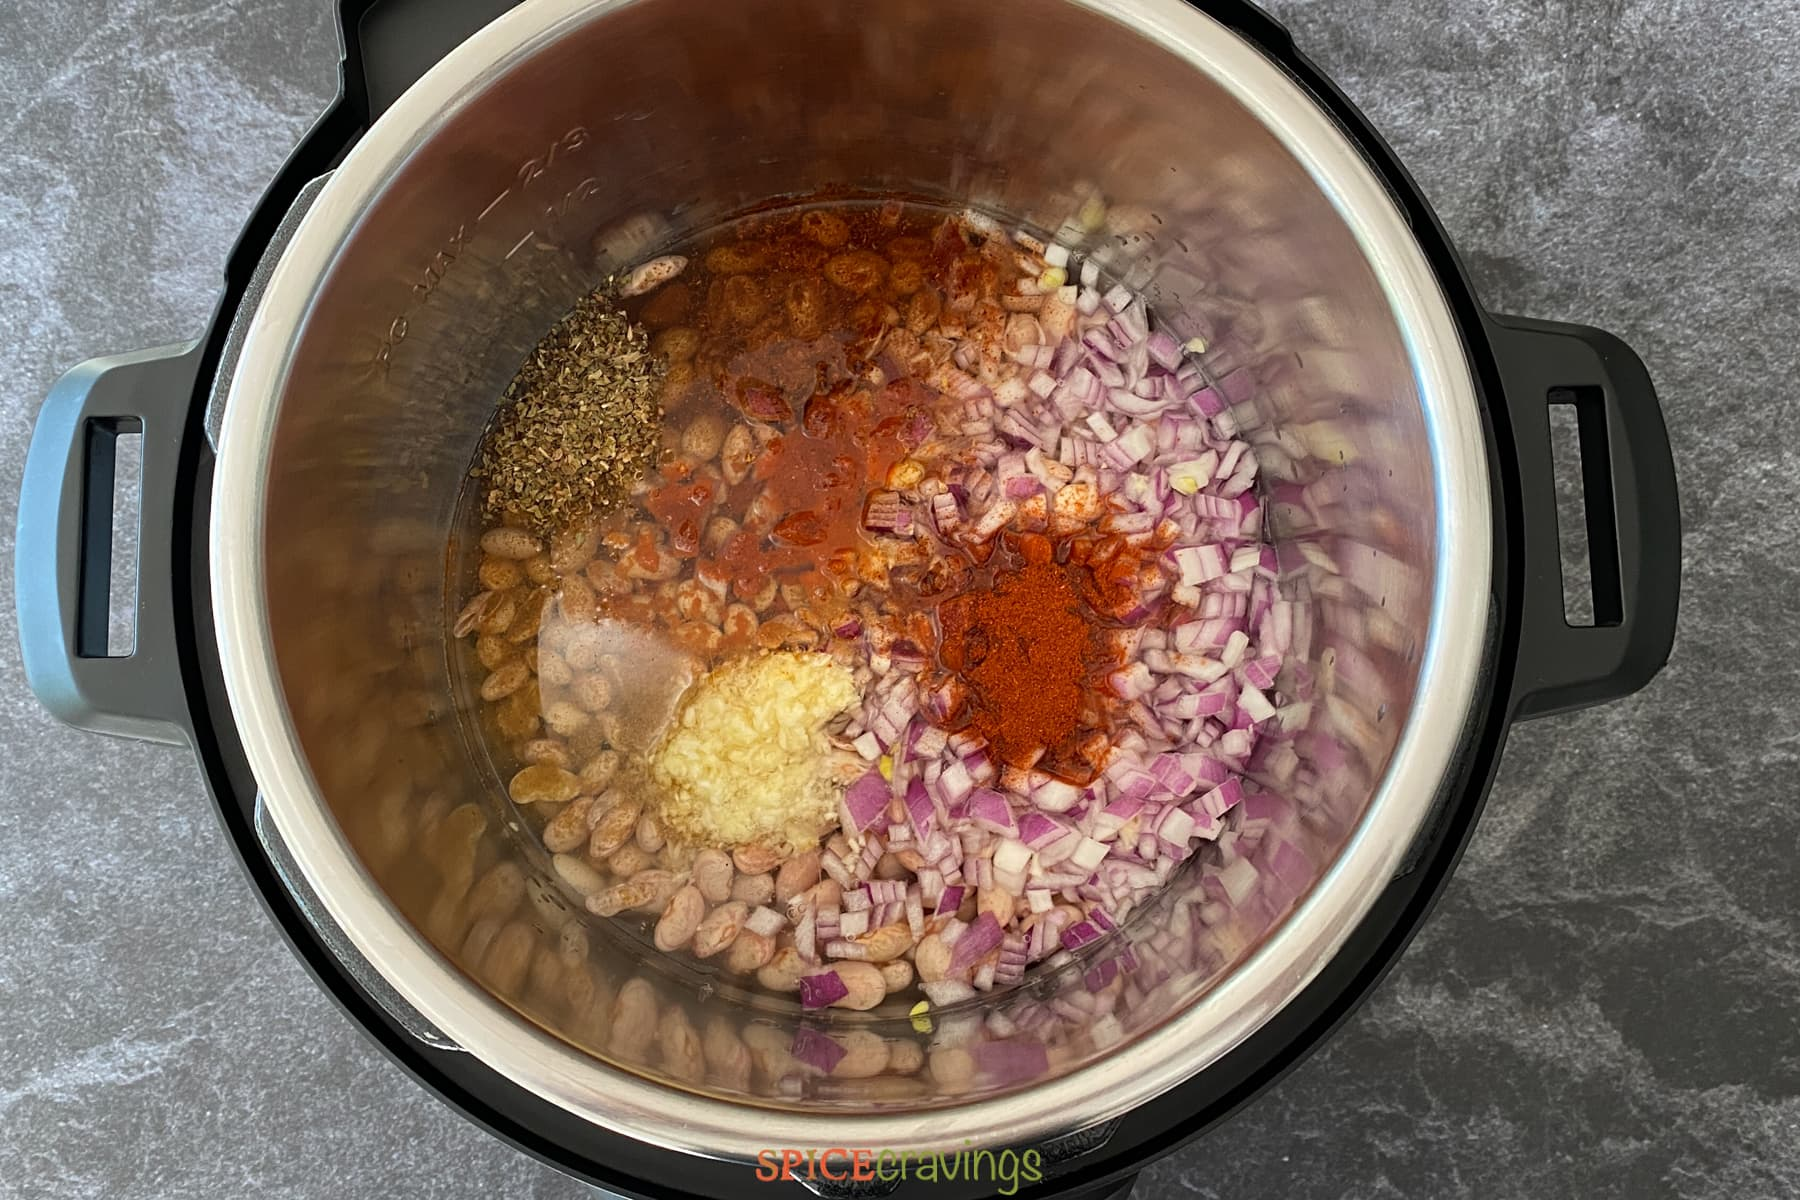 Beans and spices in an Instant Pot